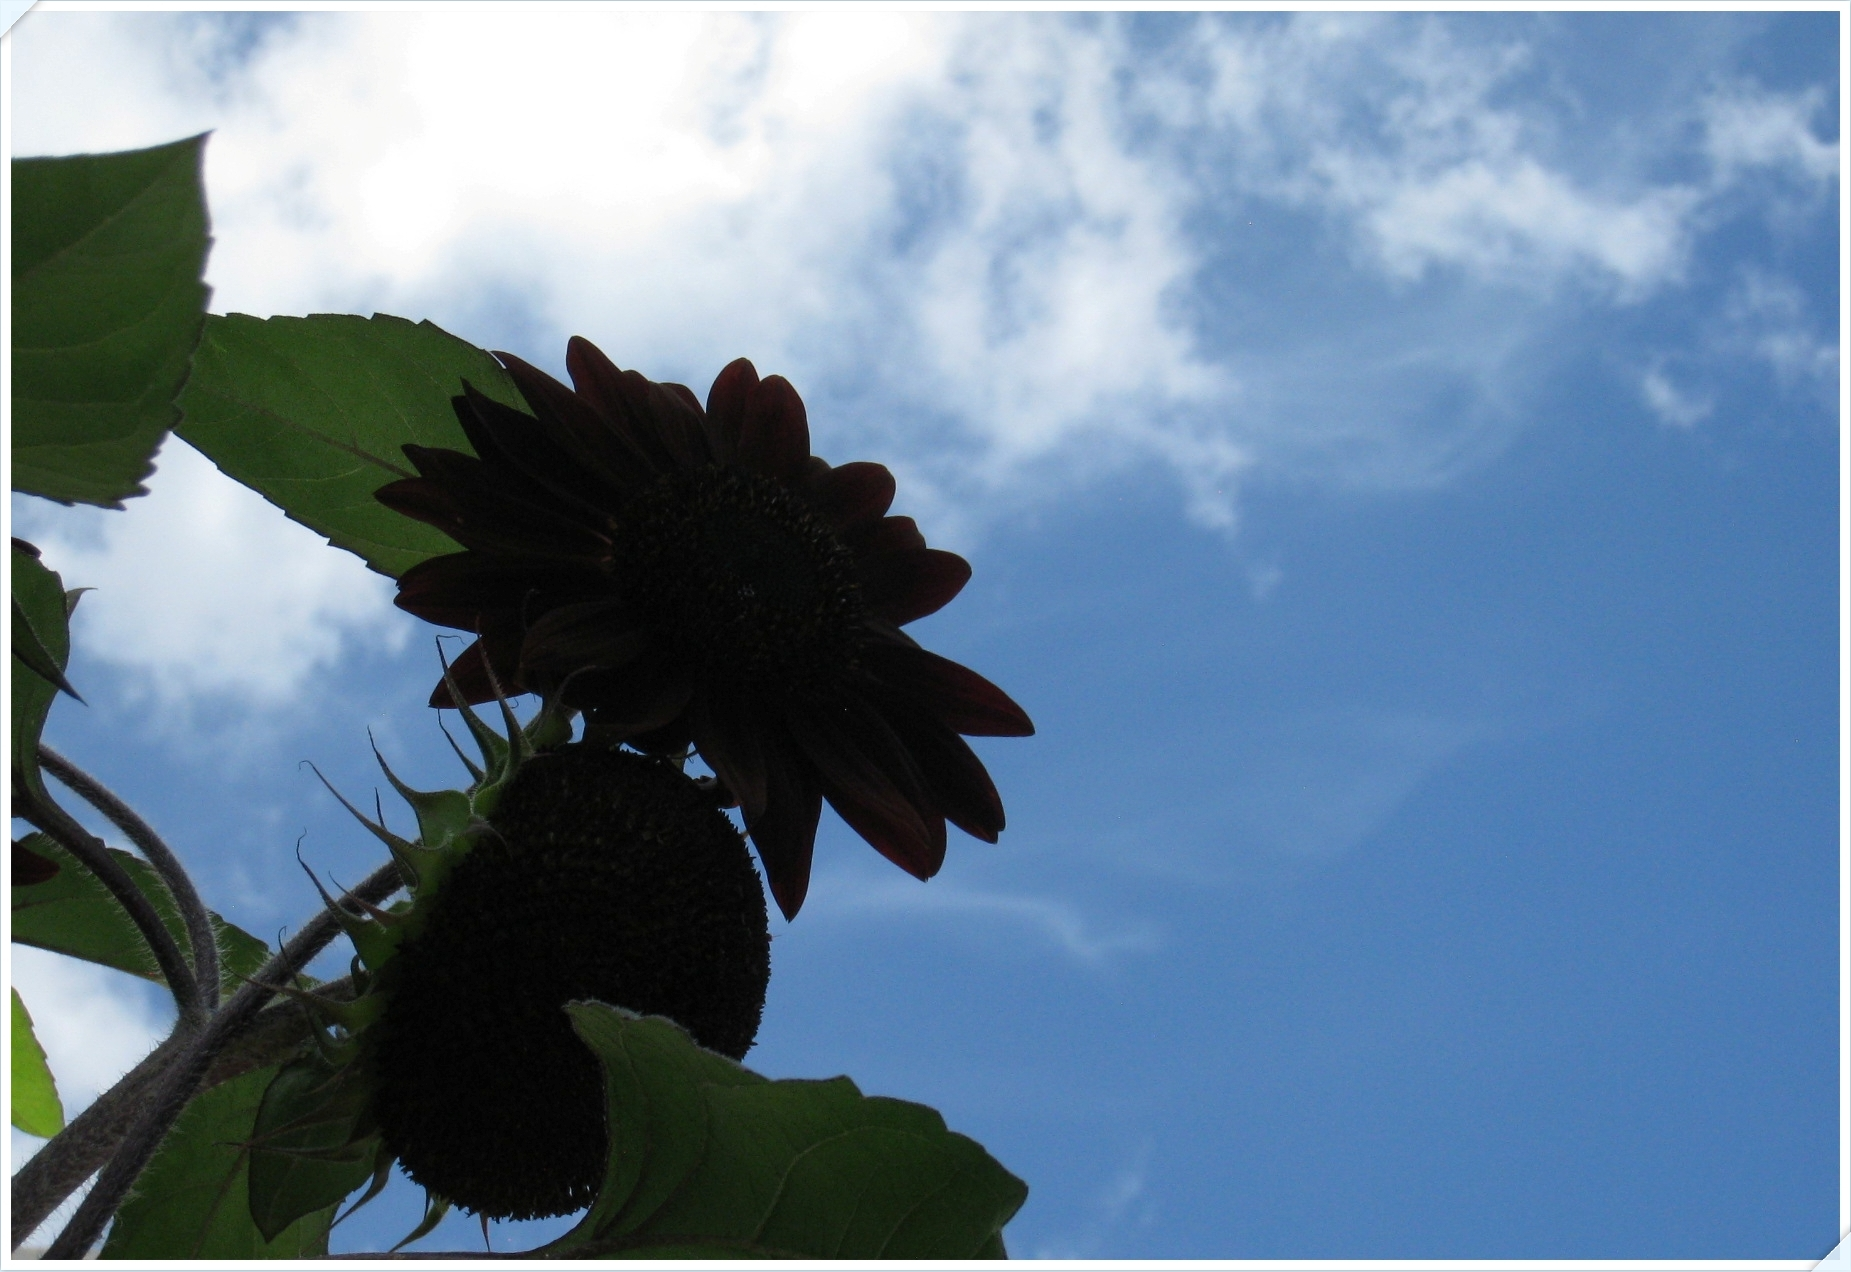 sunflower_12_905.jpg